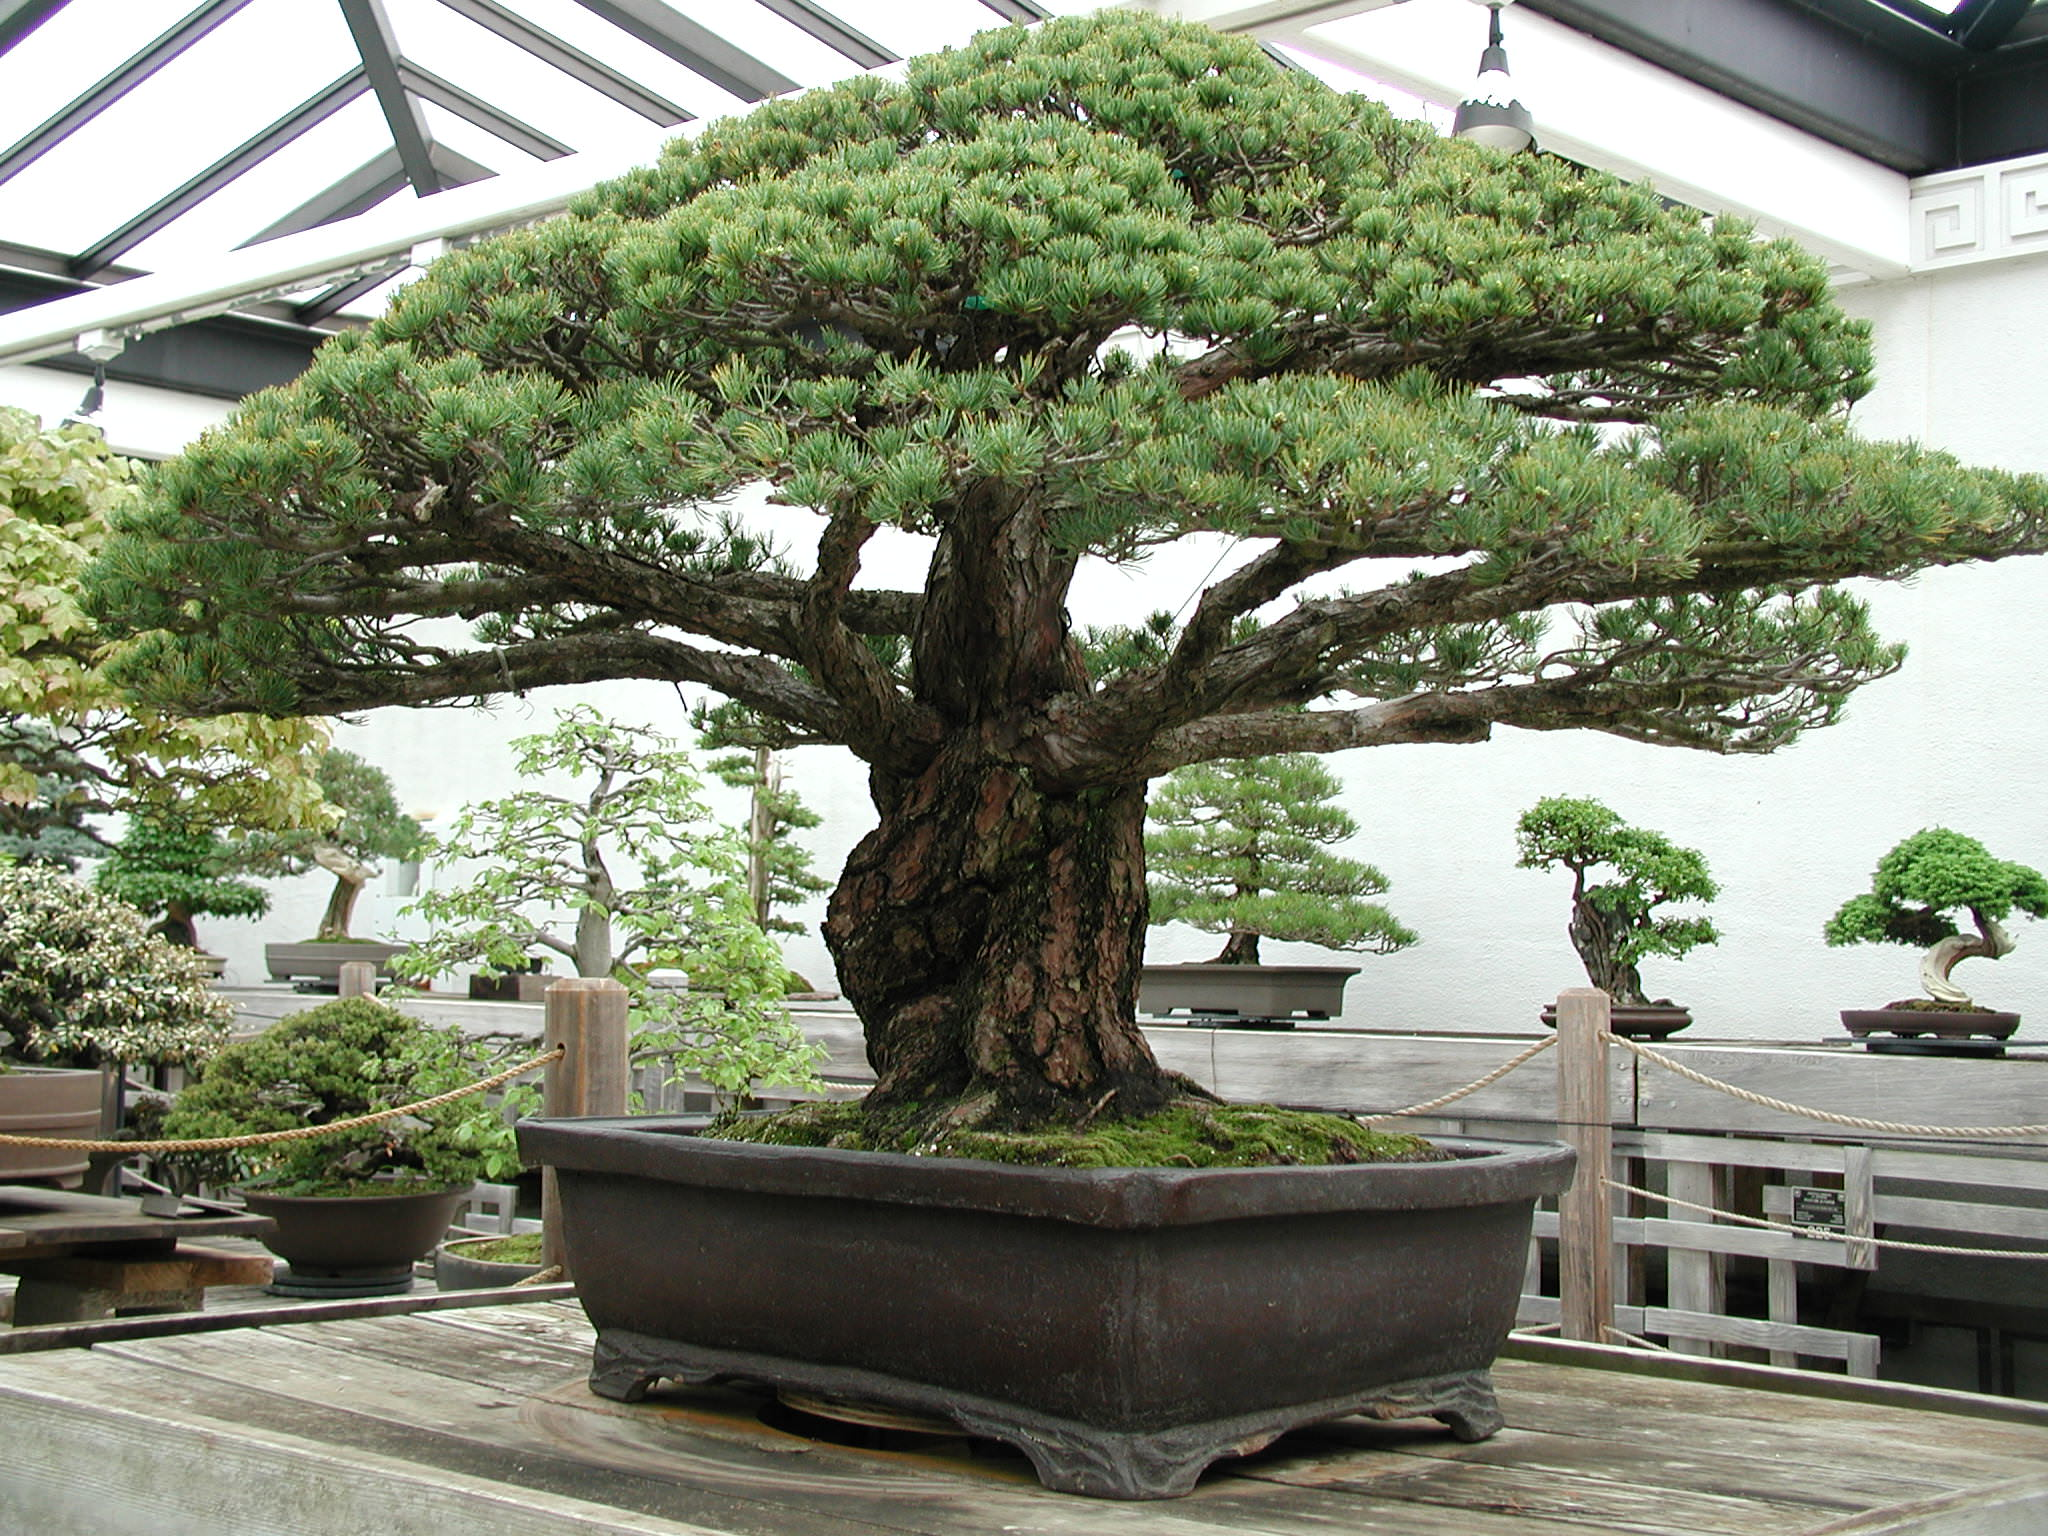 Nearly 400-Year-Old Bonsai Tree that survived the Hiroshima Blast